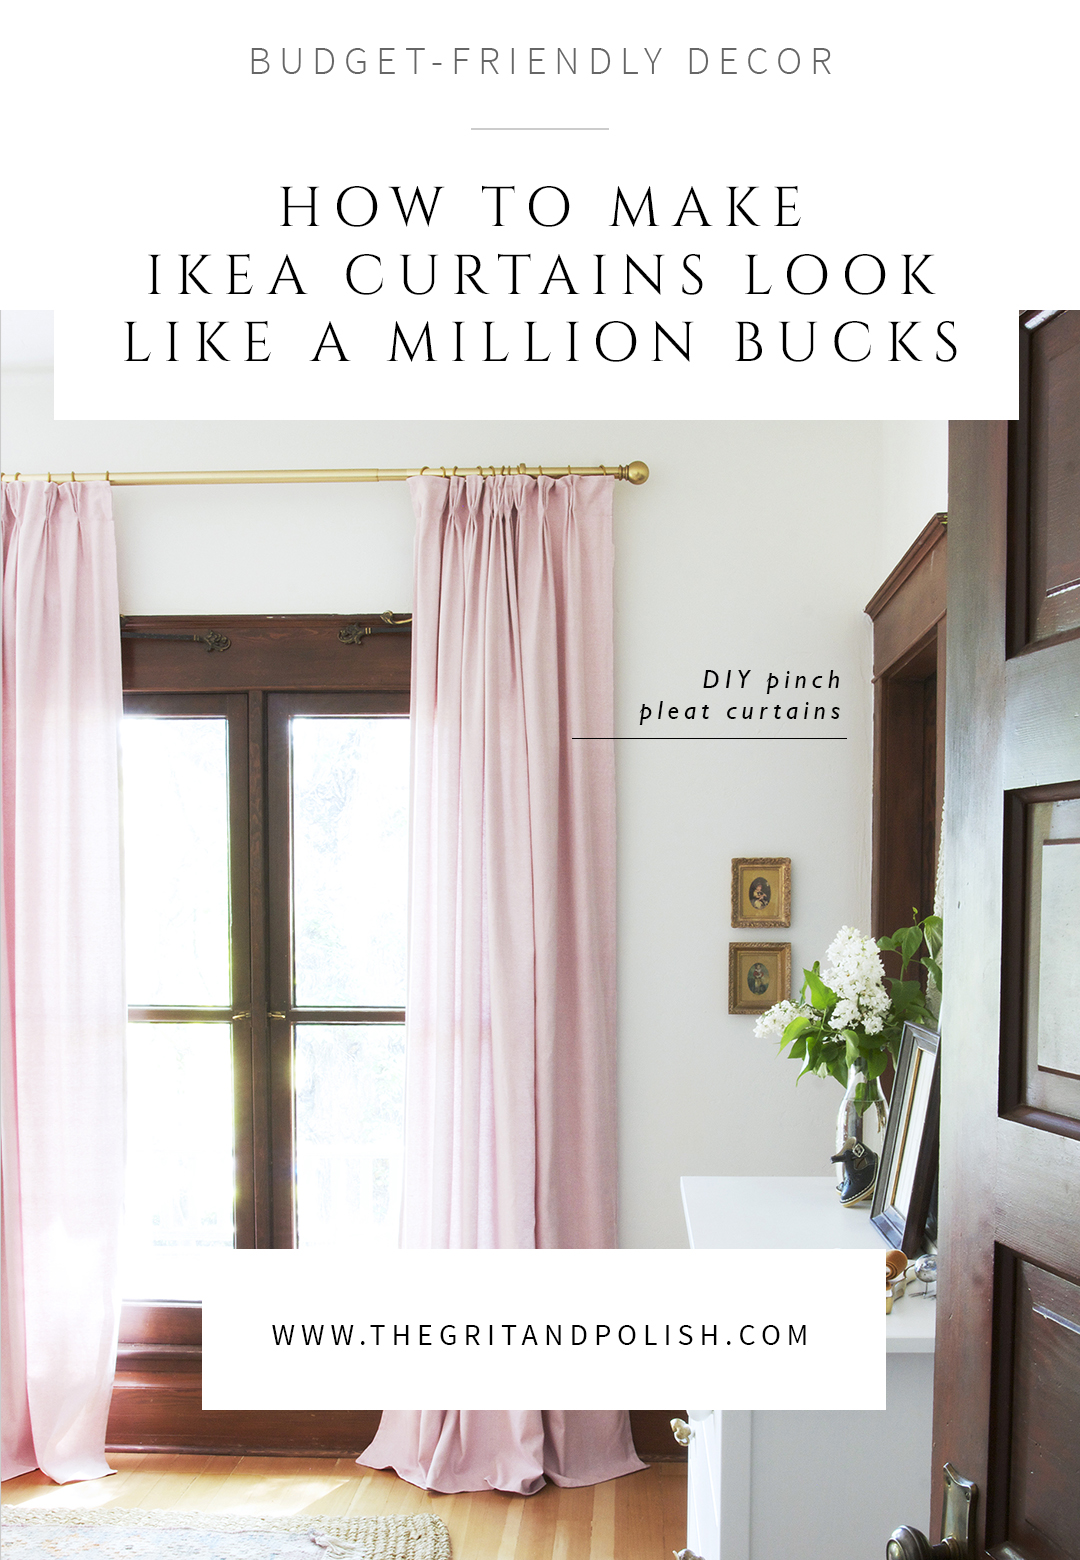 diy pinch pleat curtains how to make